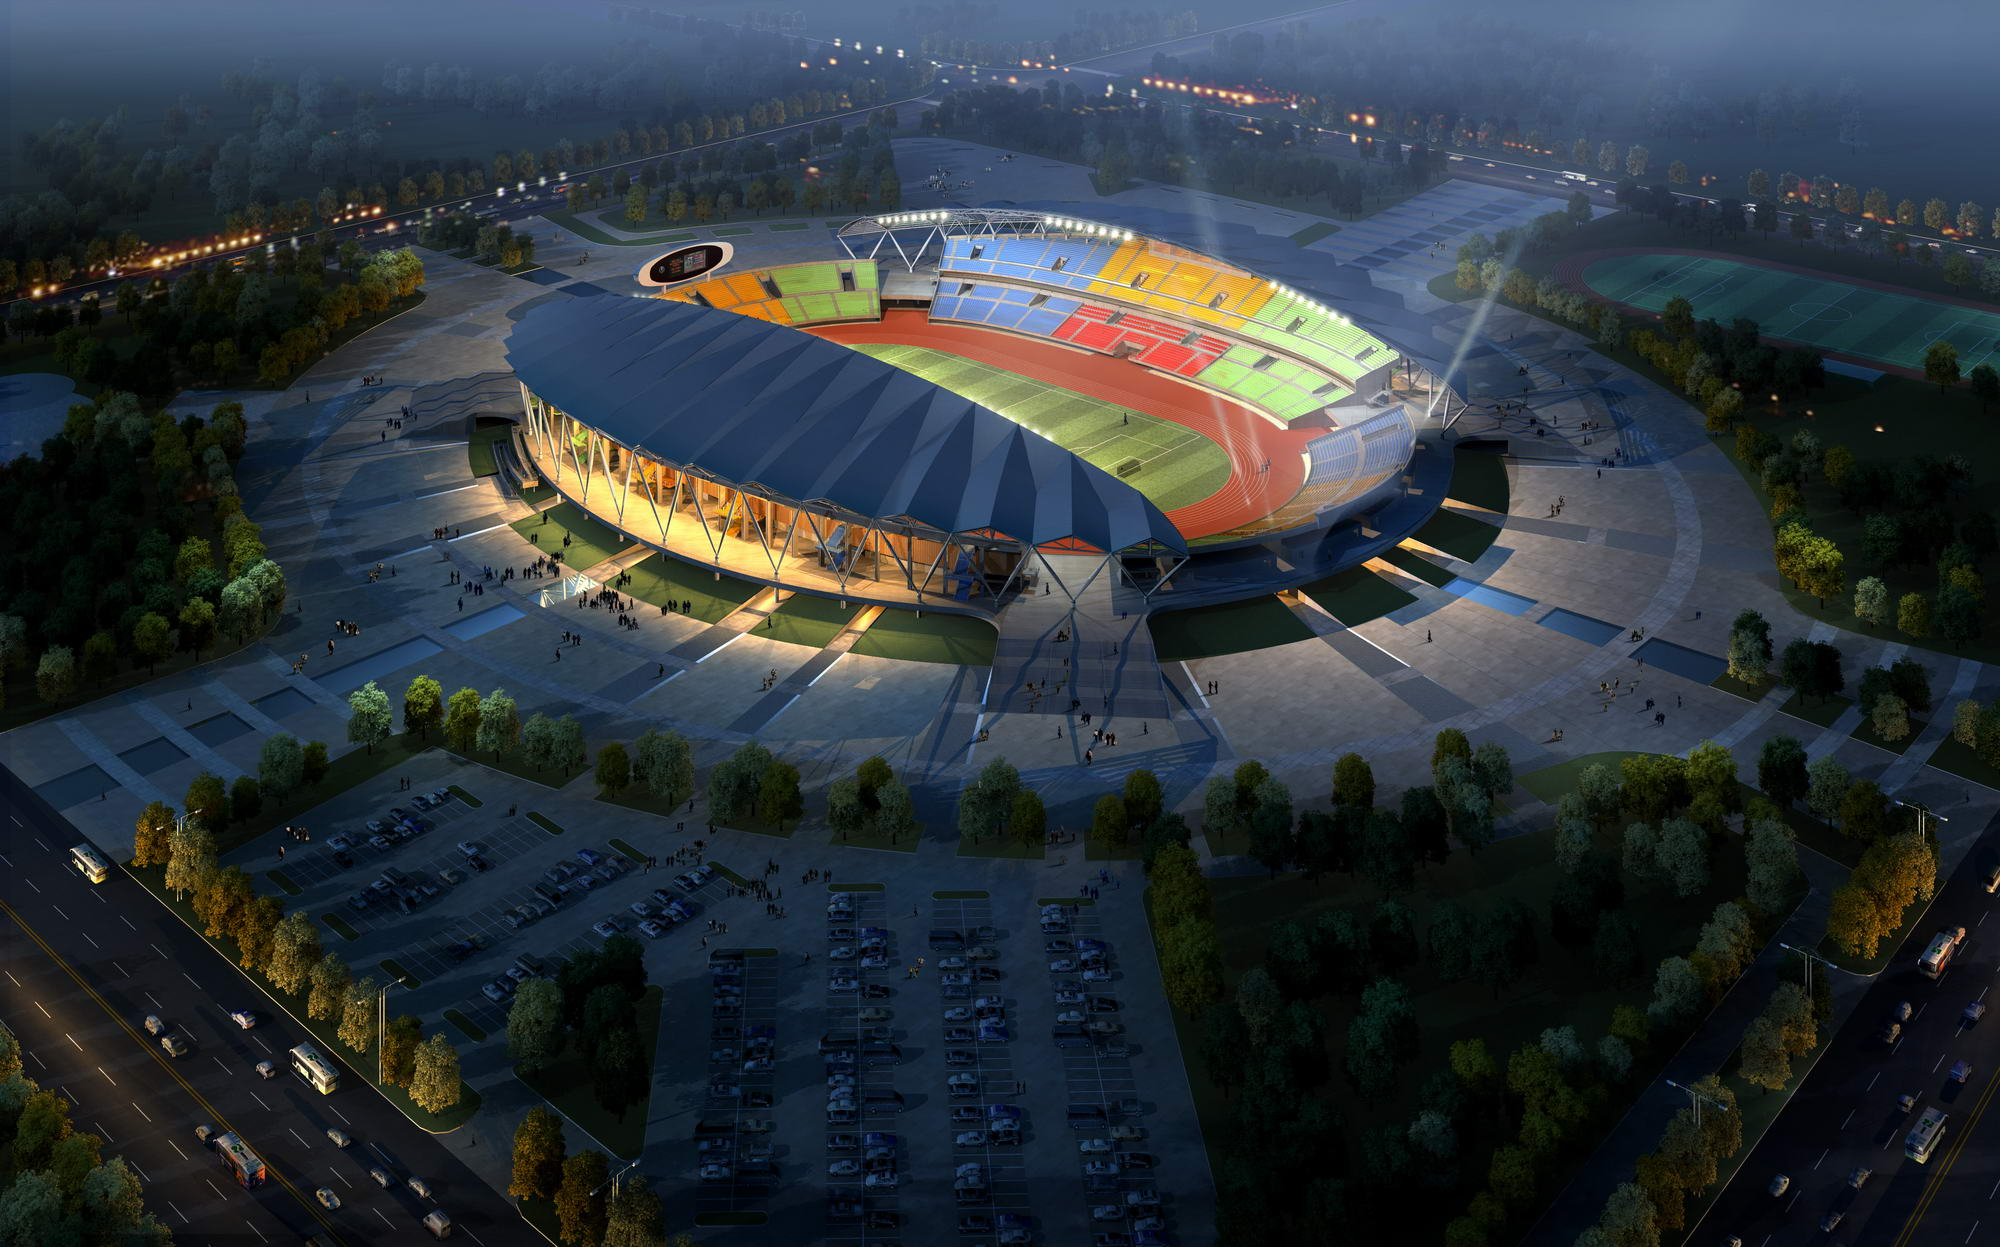 grand stadium 001 3d model 3ds max psd obj 98290